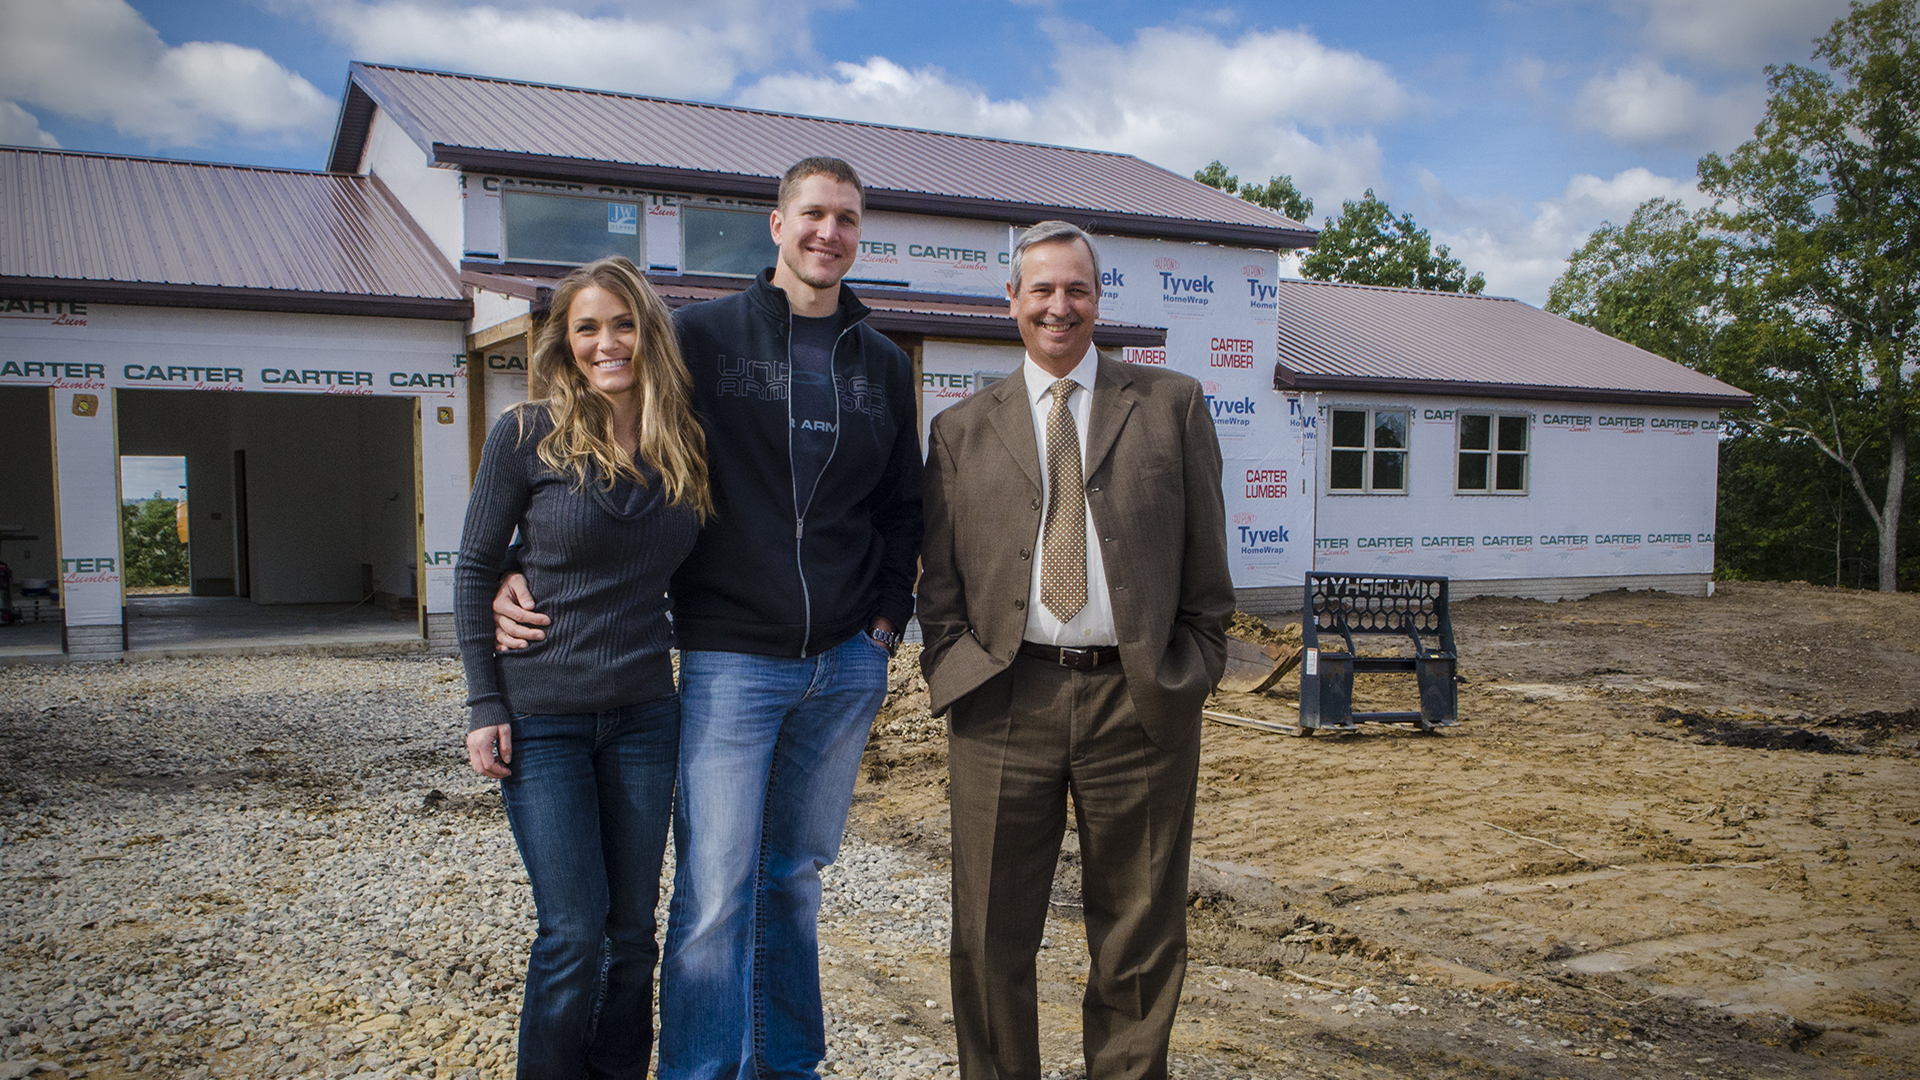 A couple standing in front of their new home, which is under construction, with their lender.